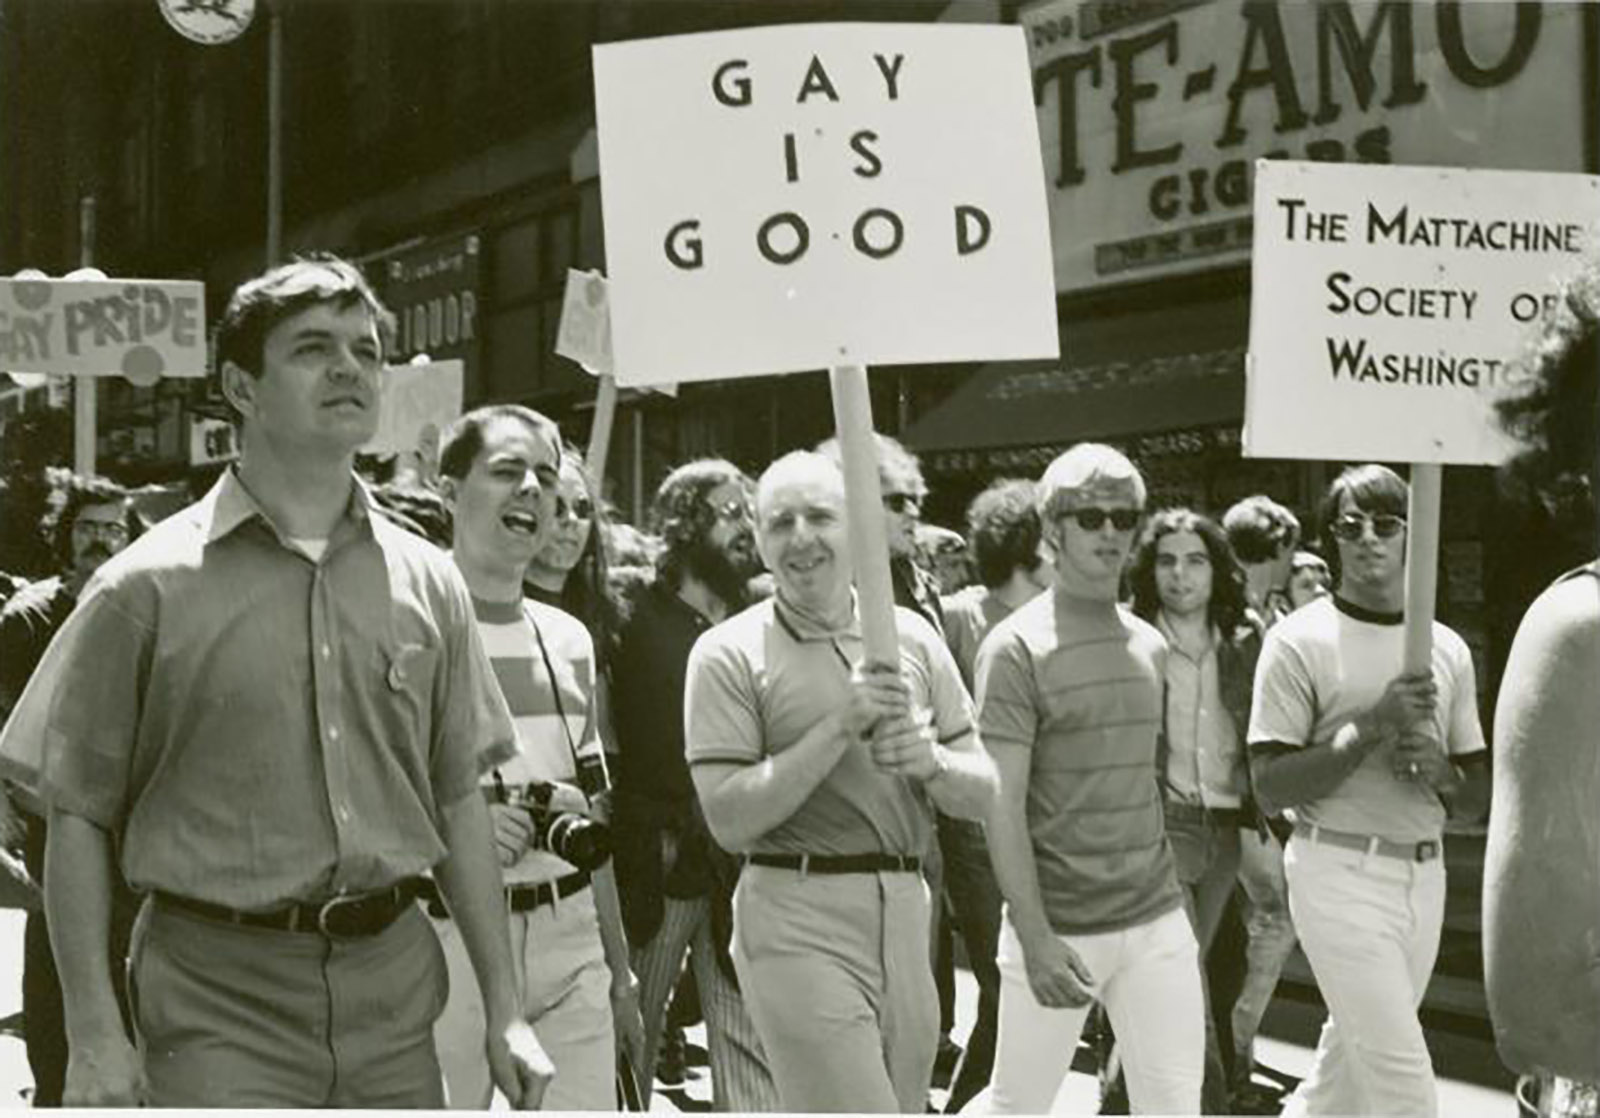 Frank Kameny (center) and Mattachine Society of Washington members marching in the first Christopher Street Liberation Day Parade, New York City, 1970